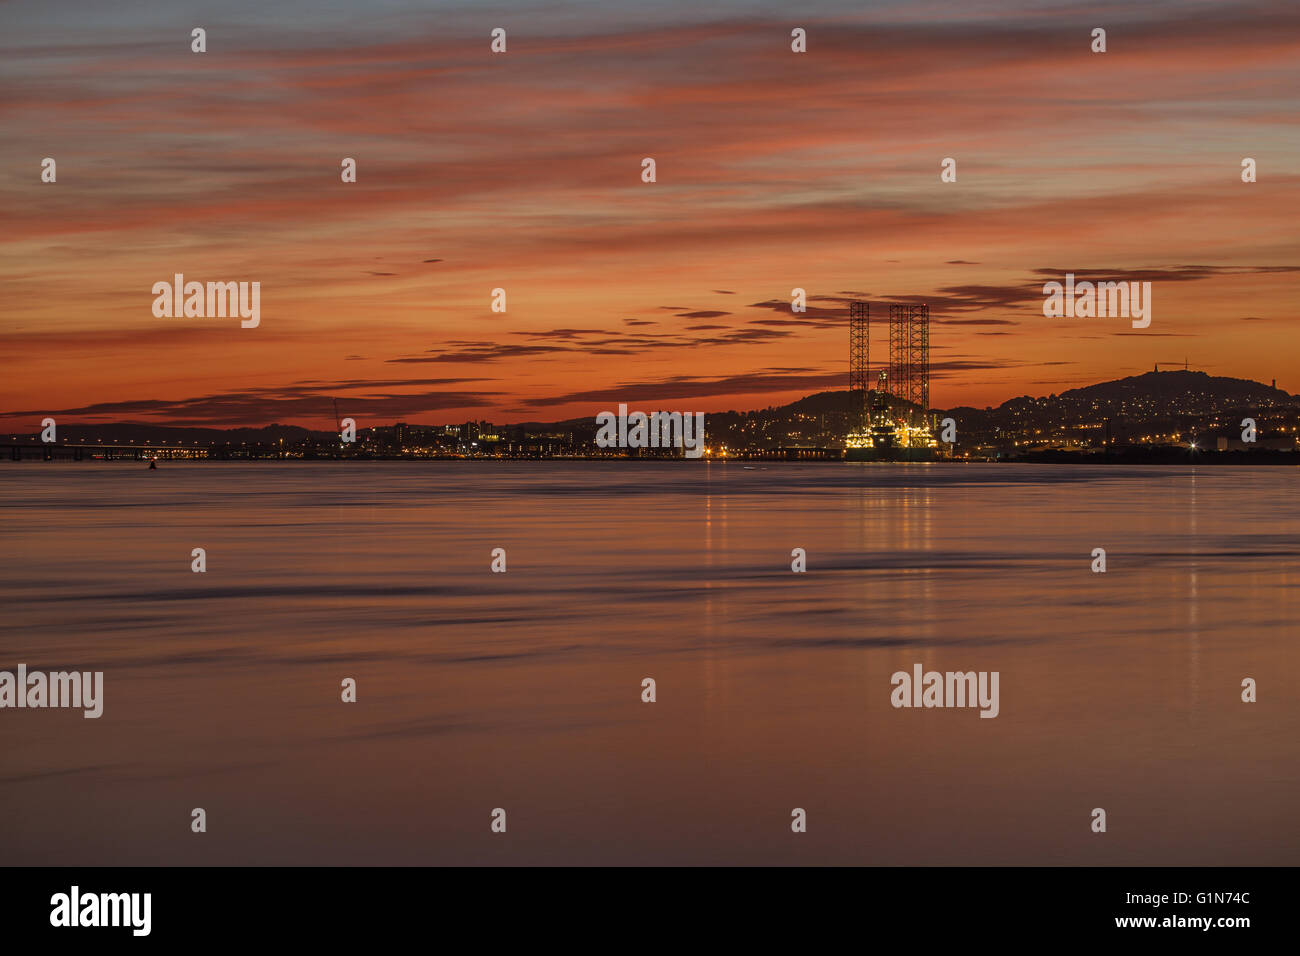 Oil rig in Dundee docks at sunset - Stock Image